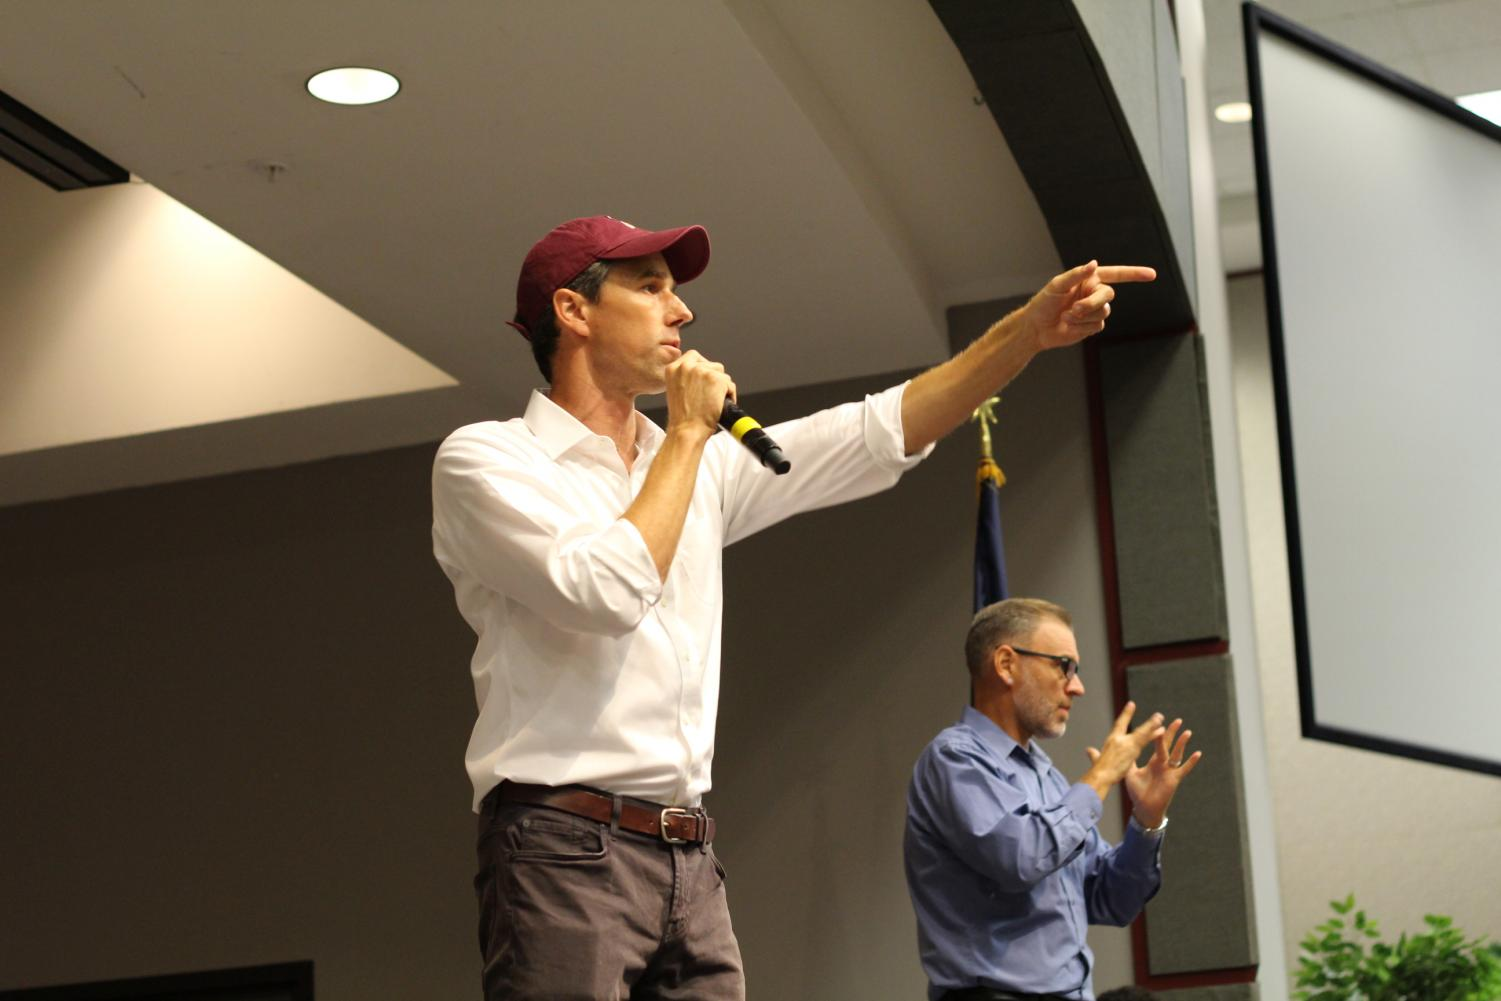 Senate candidate and Congressman Beto O'Rourke addresses a campaign rally. photo courtesy of Sophia Blaha